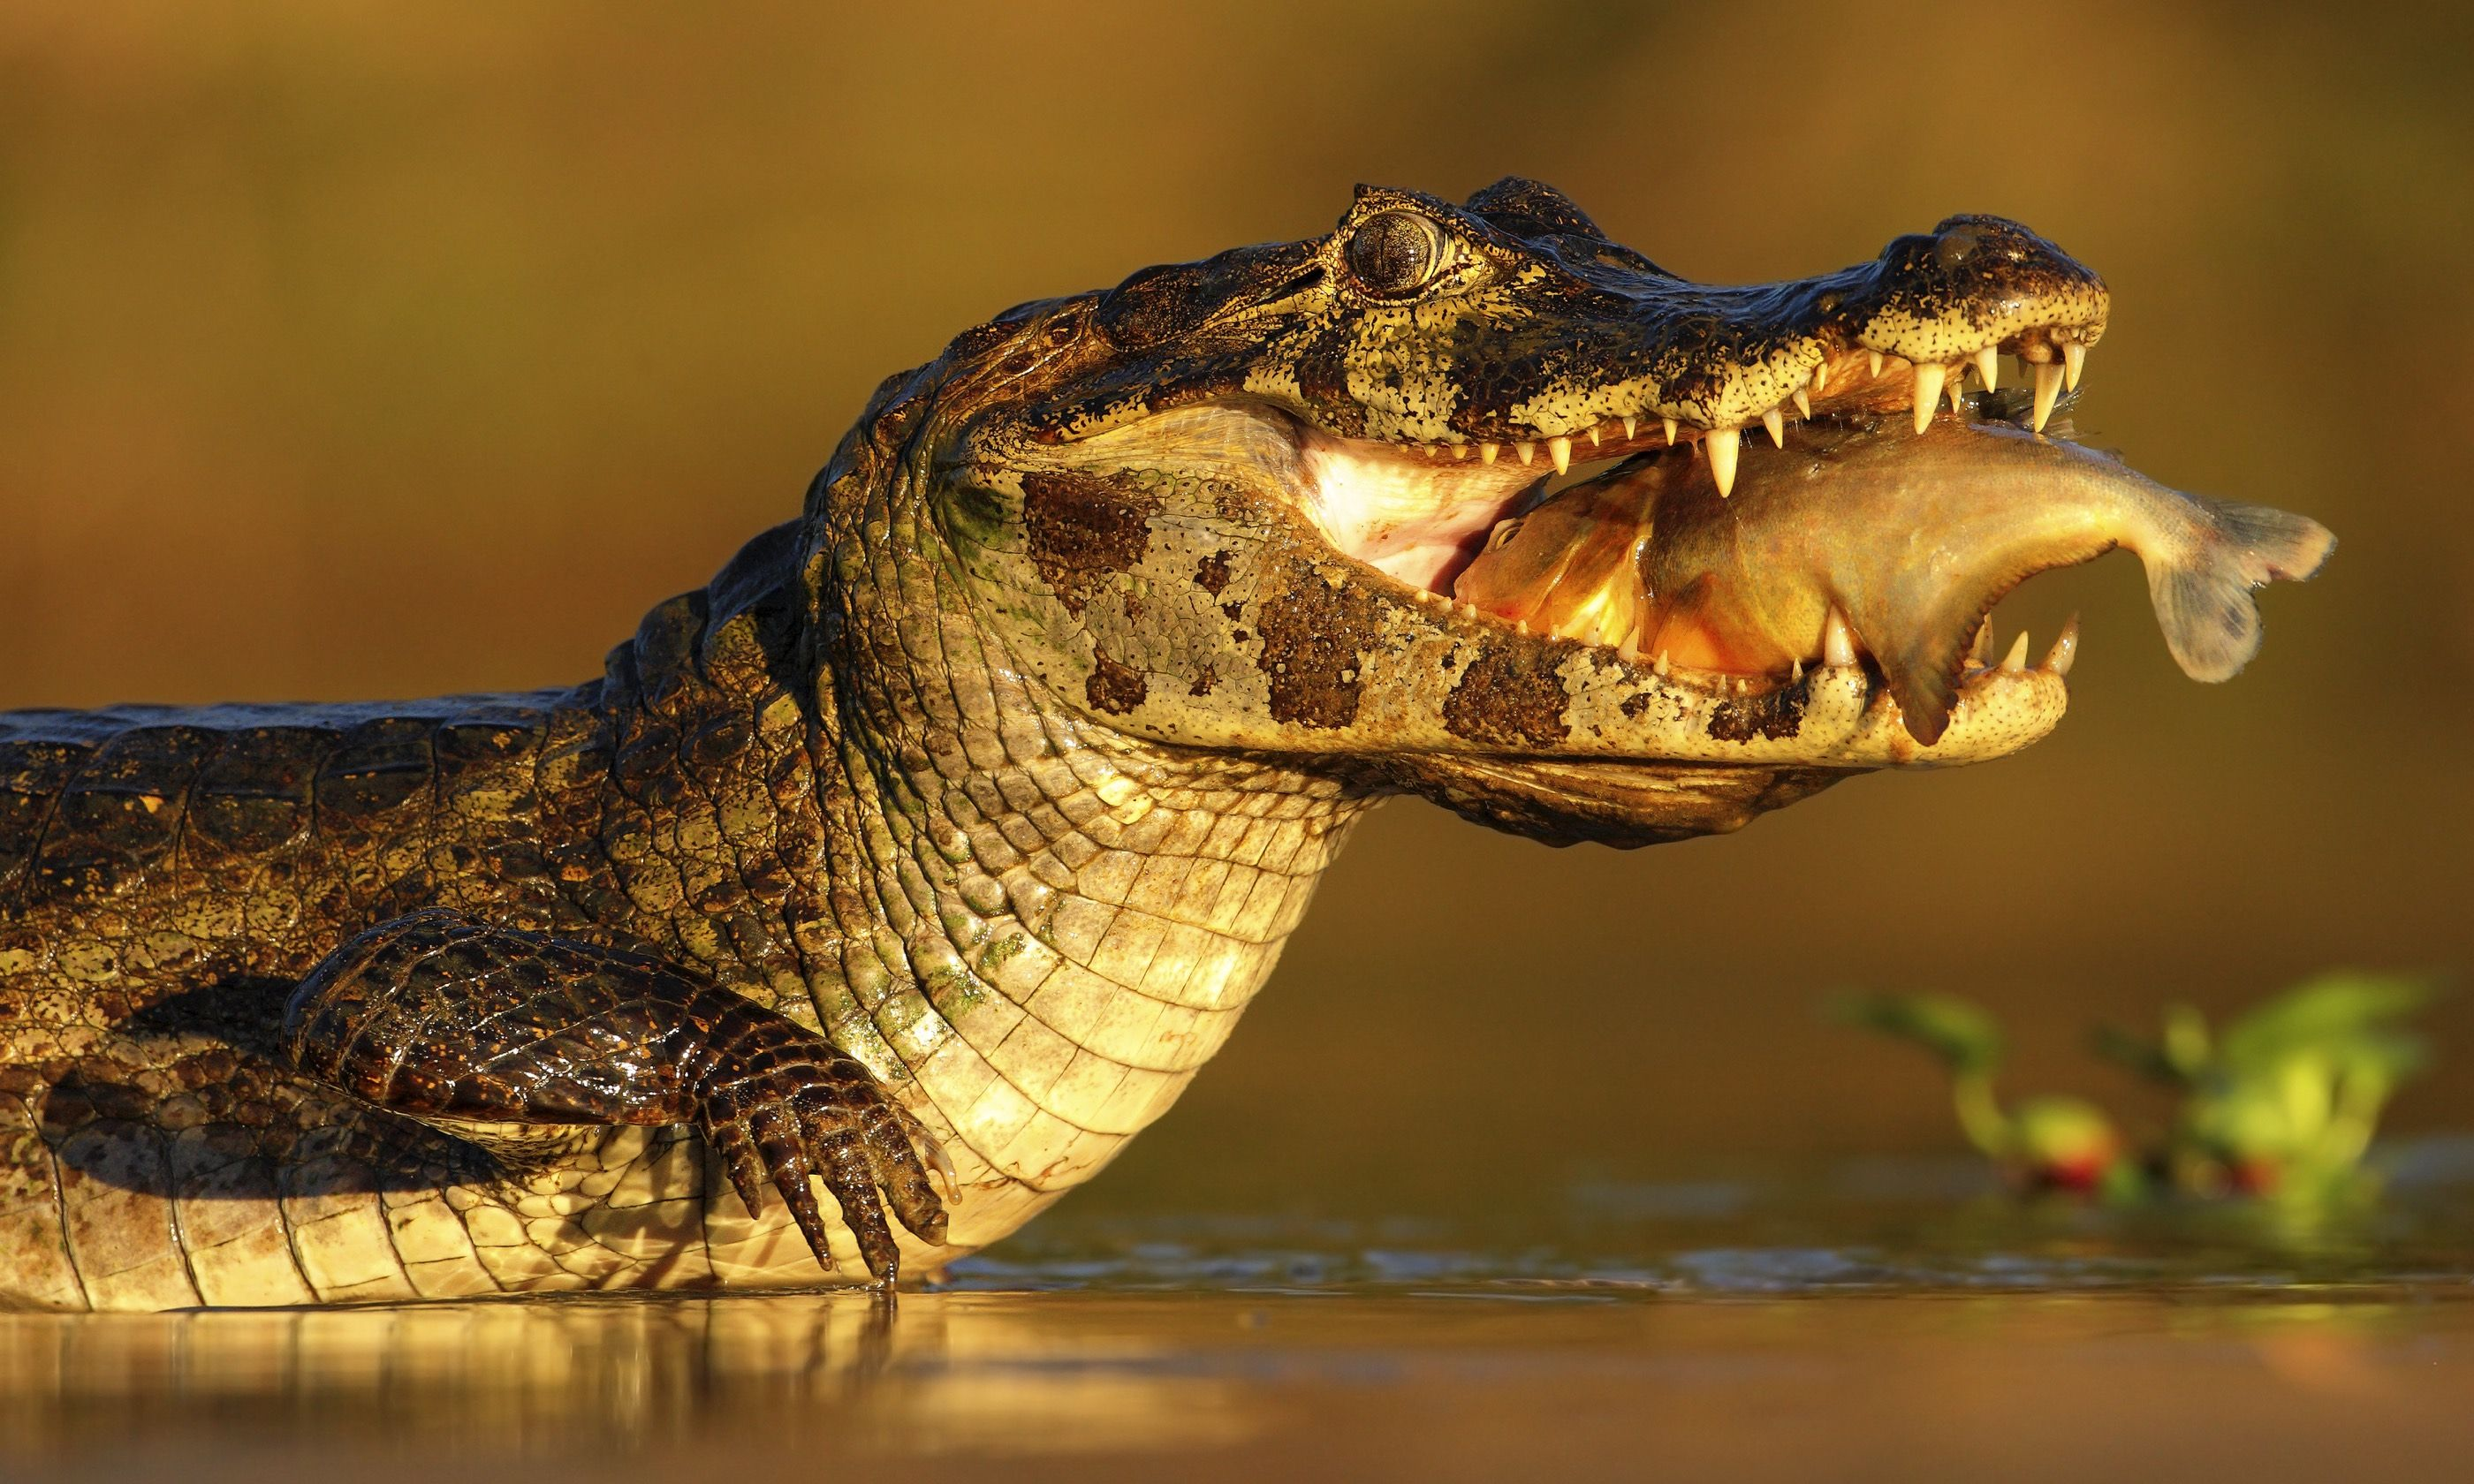 Dinner time in the Pantanal (Dreamstime)